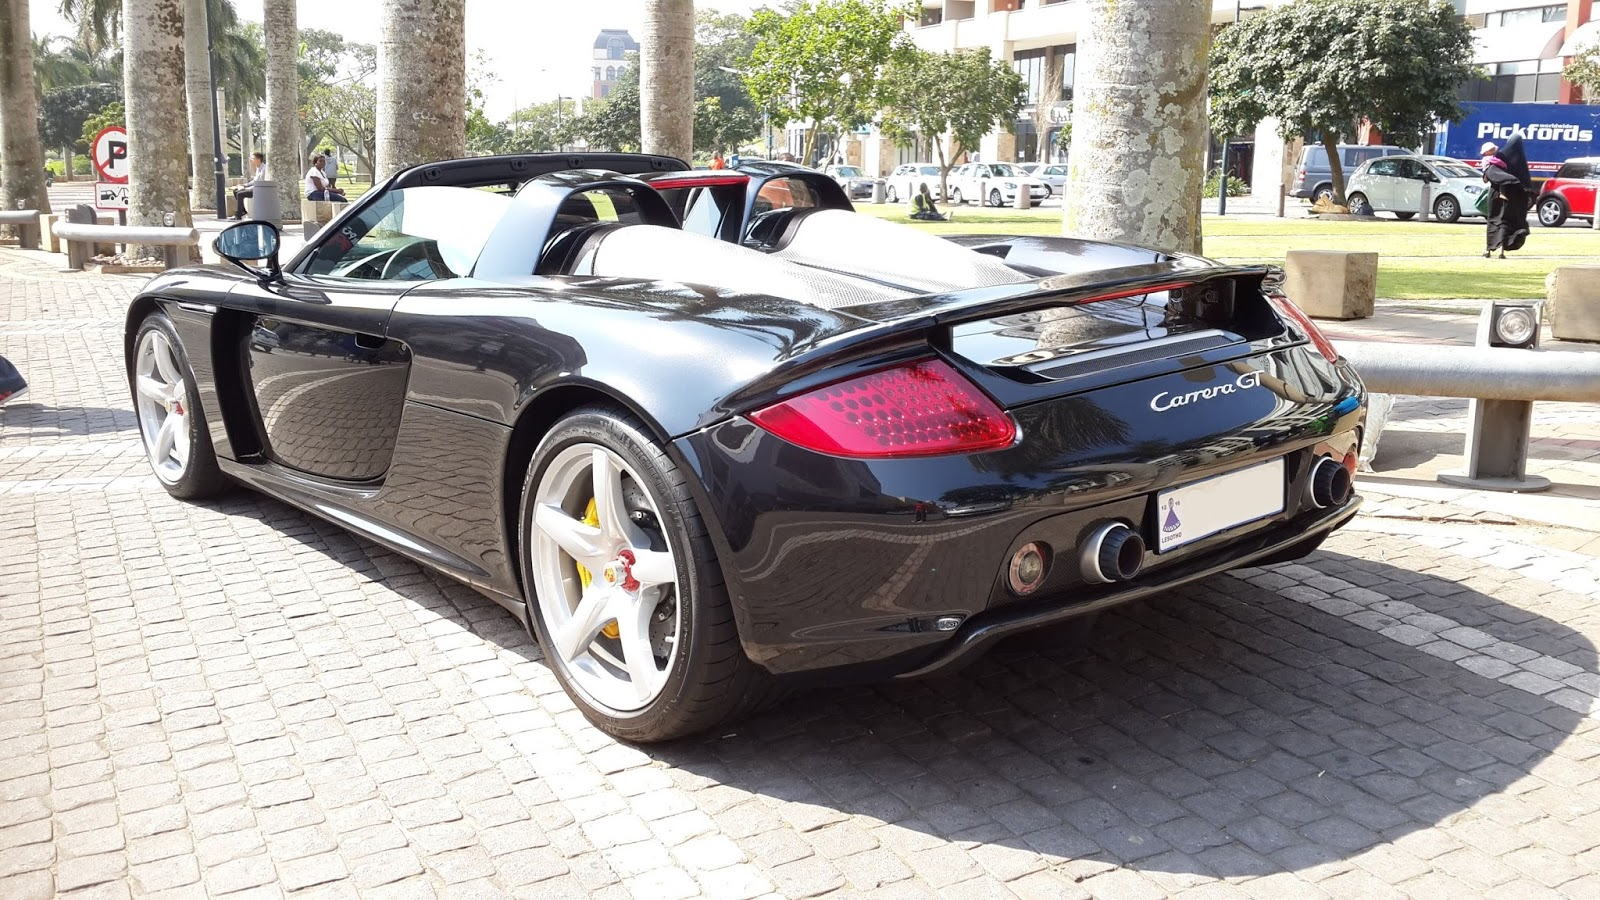 Porsche Carrera Gt Spotted In Durban South Africa